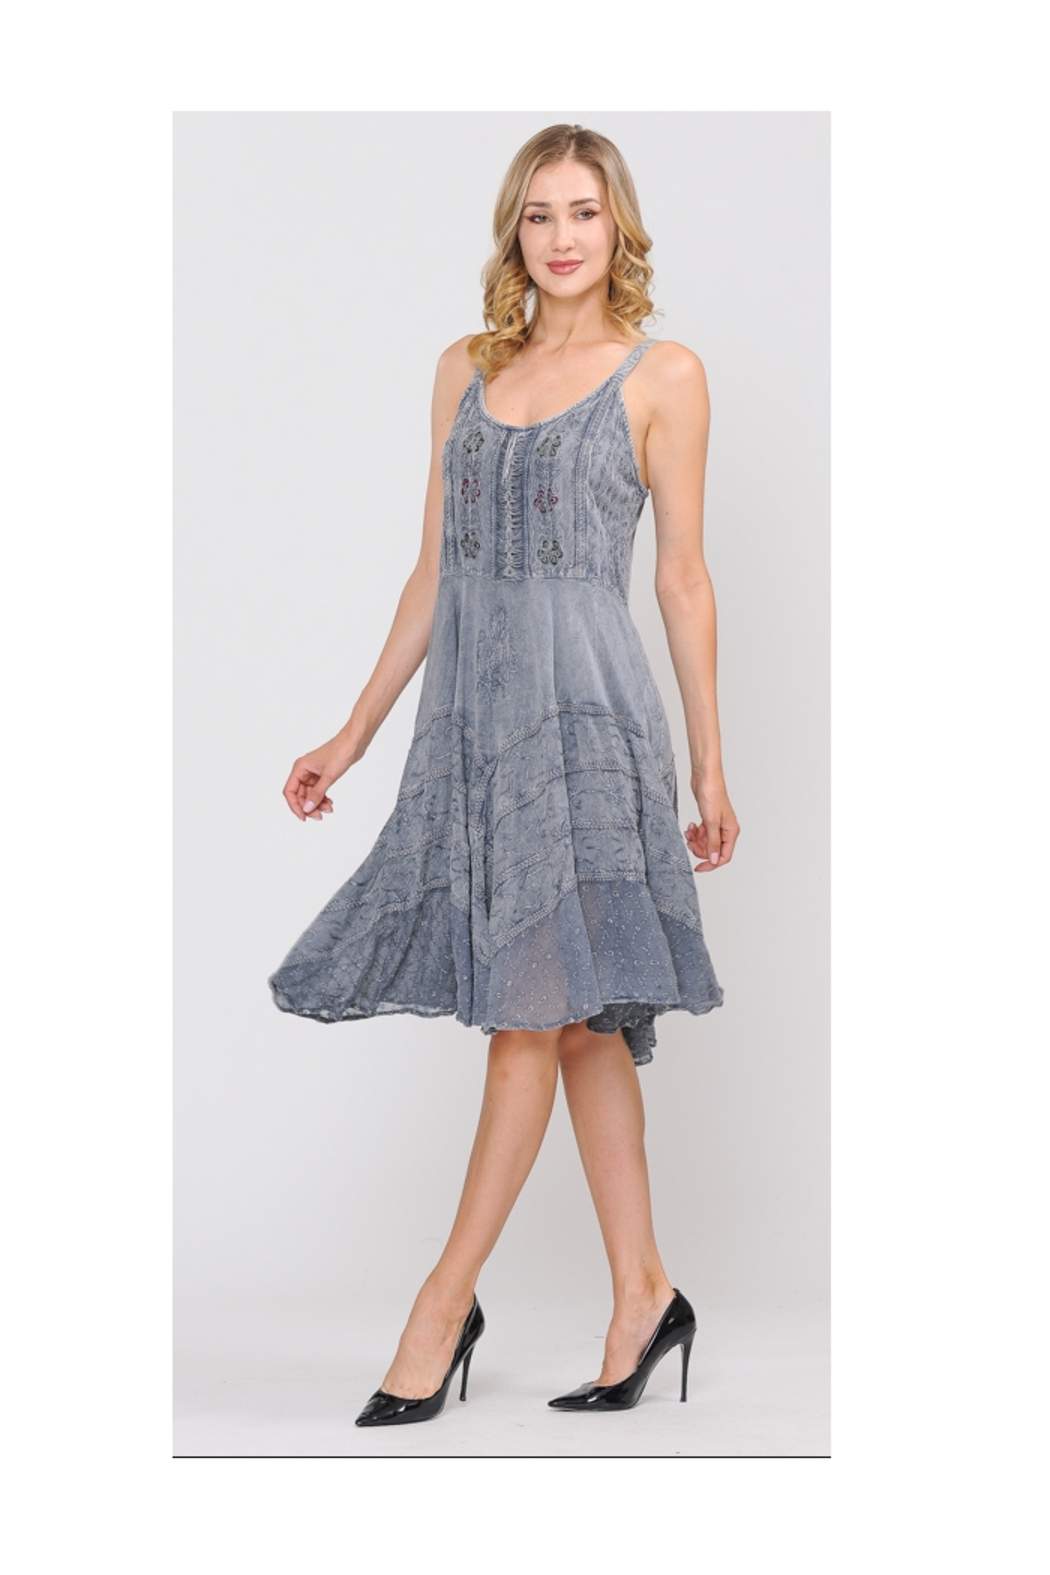 Apparel Love Sand Wash Grey Lace Front Dress - Main Image